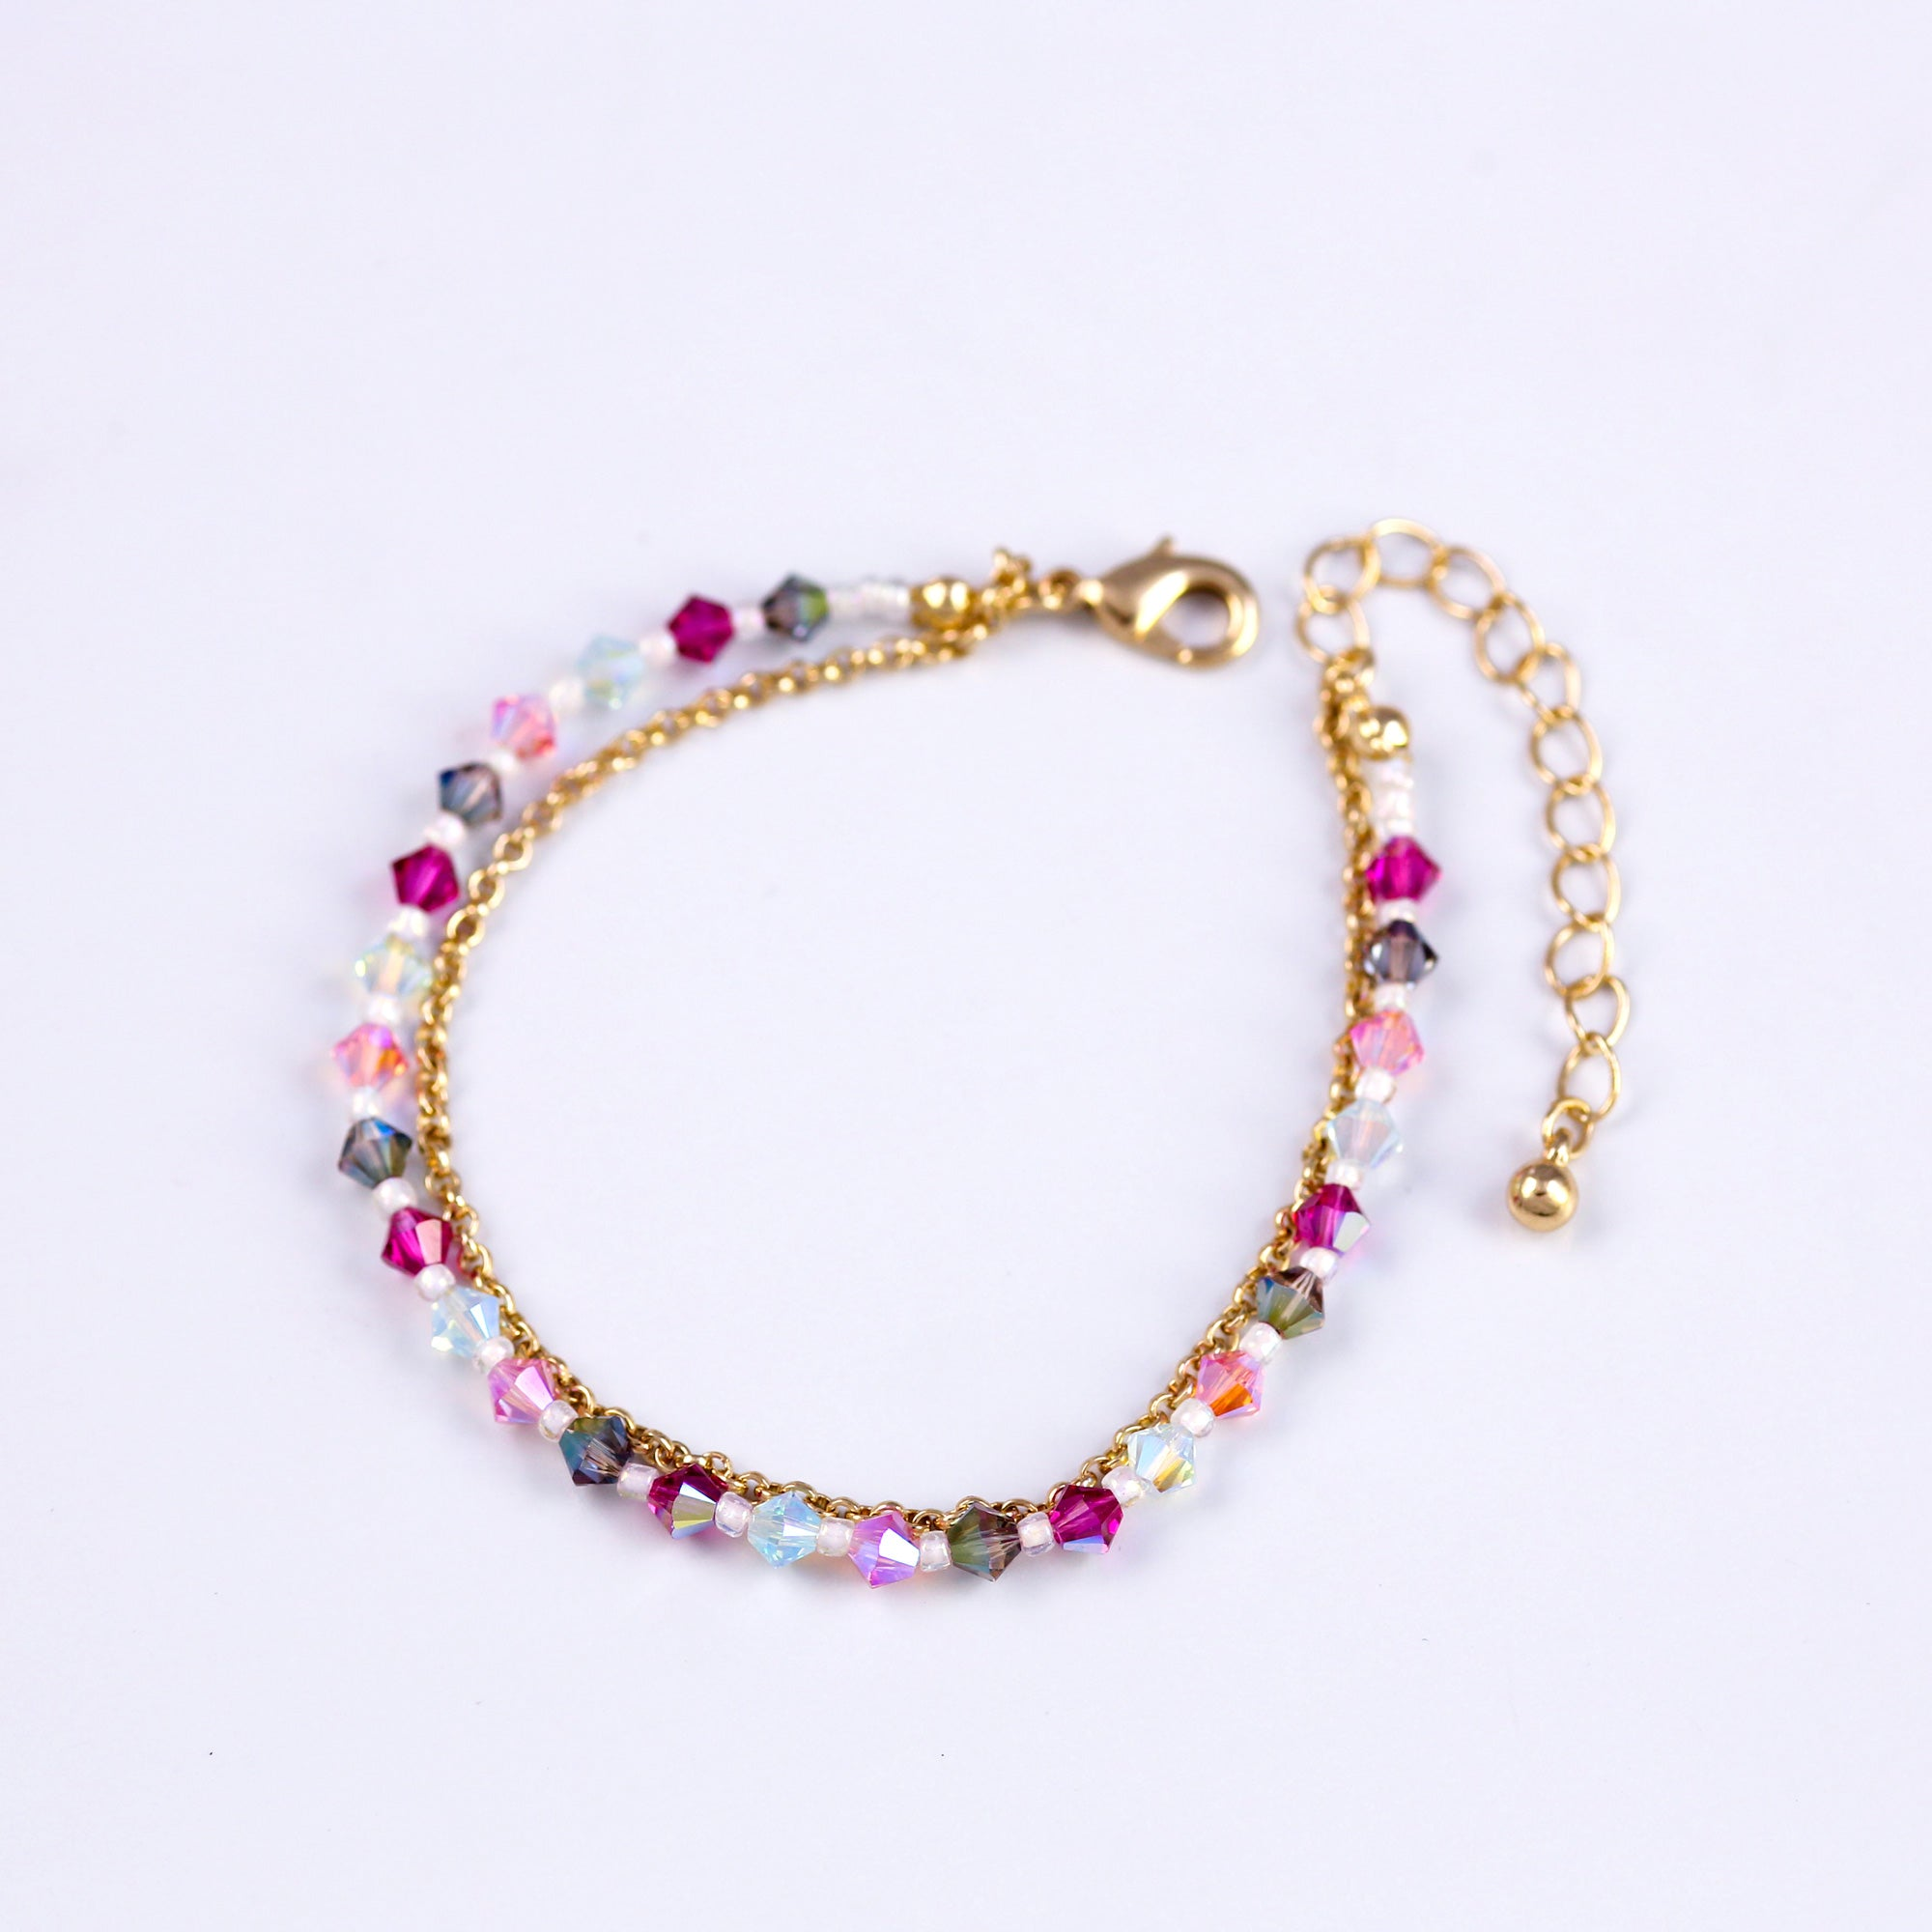 Gold Bead Bracelet in Purples